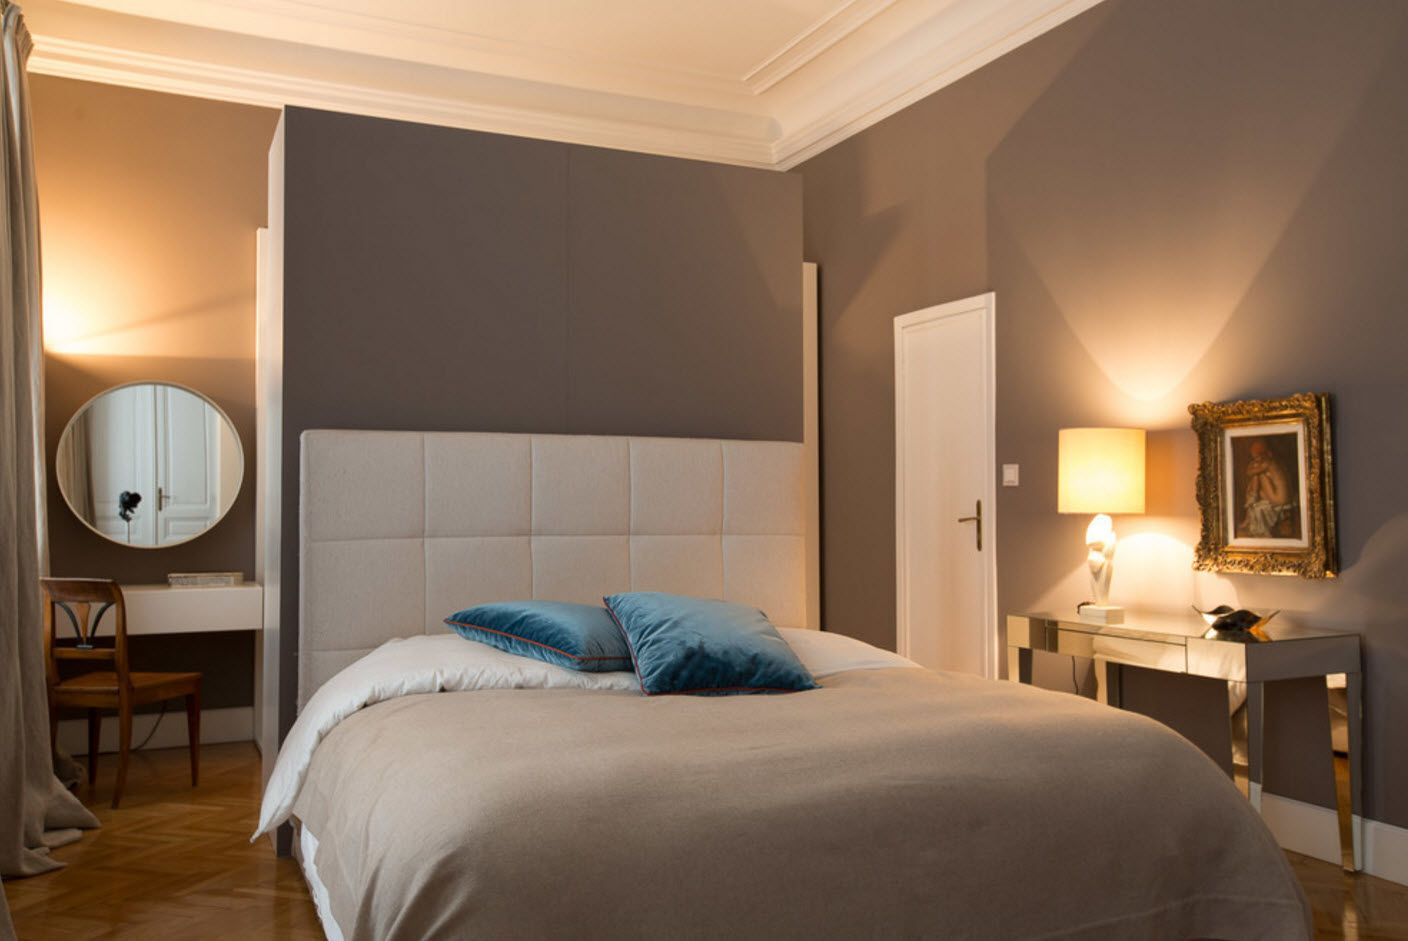 Gray wall decoration and soft square quilted headboard